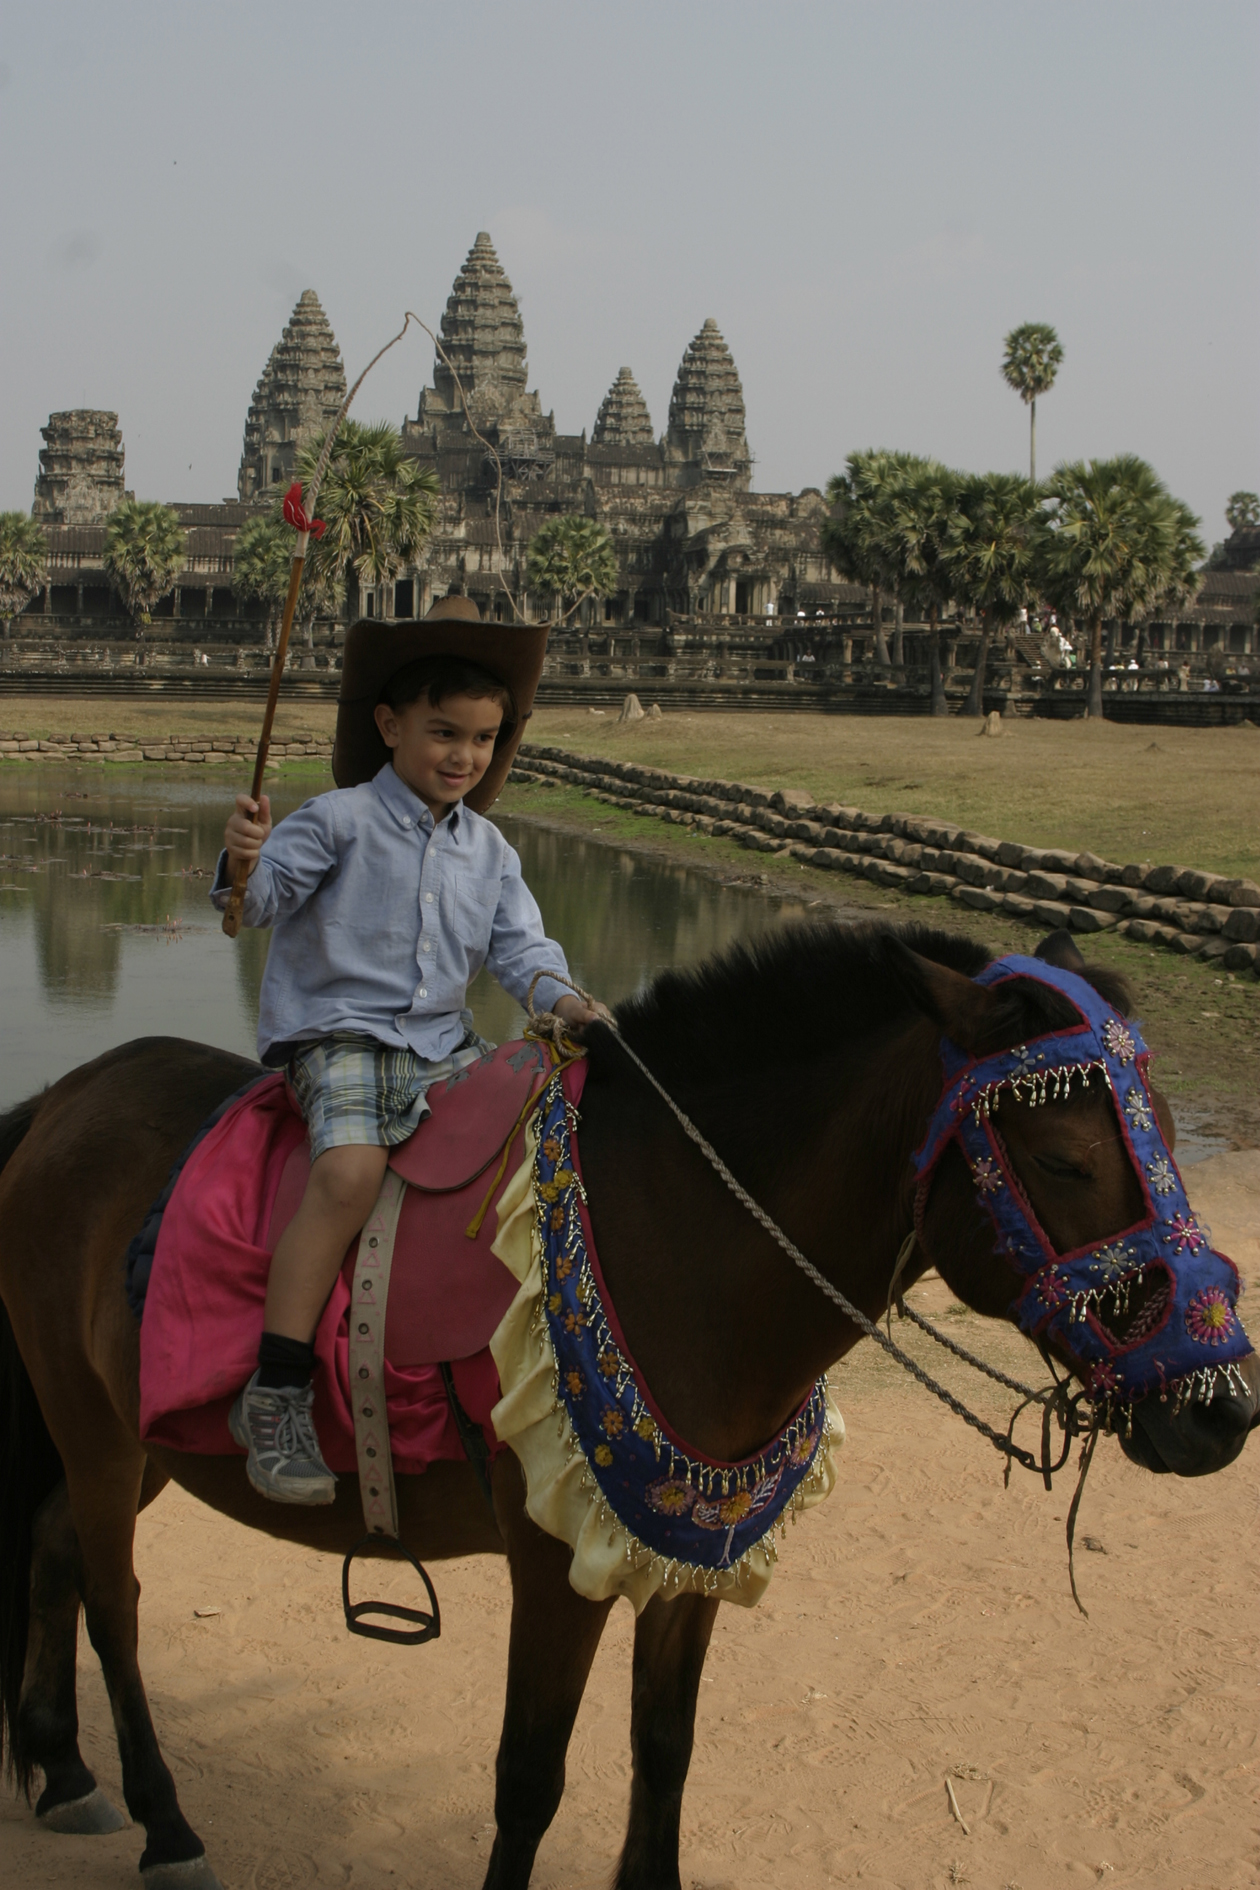 3_feb_2008__ld_on_pony_hat_and_whip_siem_reap_cambodia_angkor_wat_temple